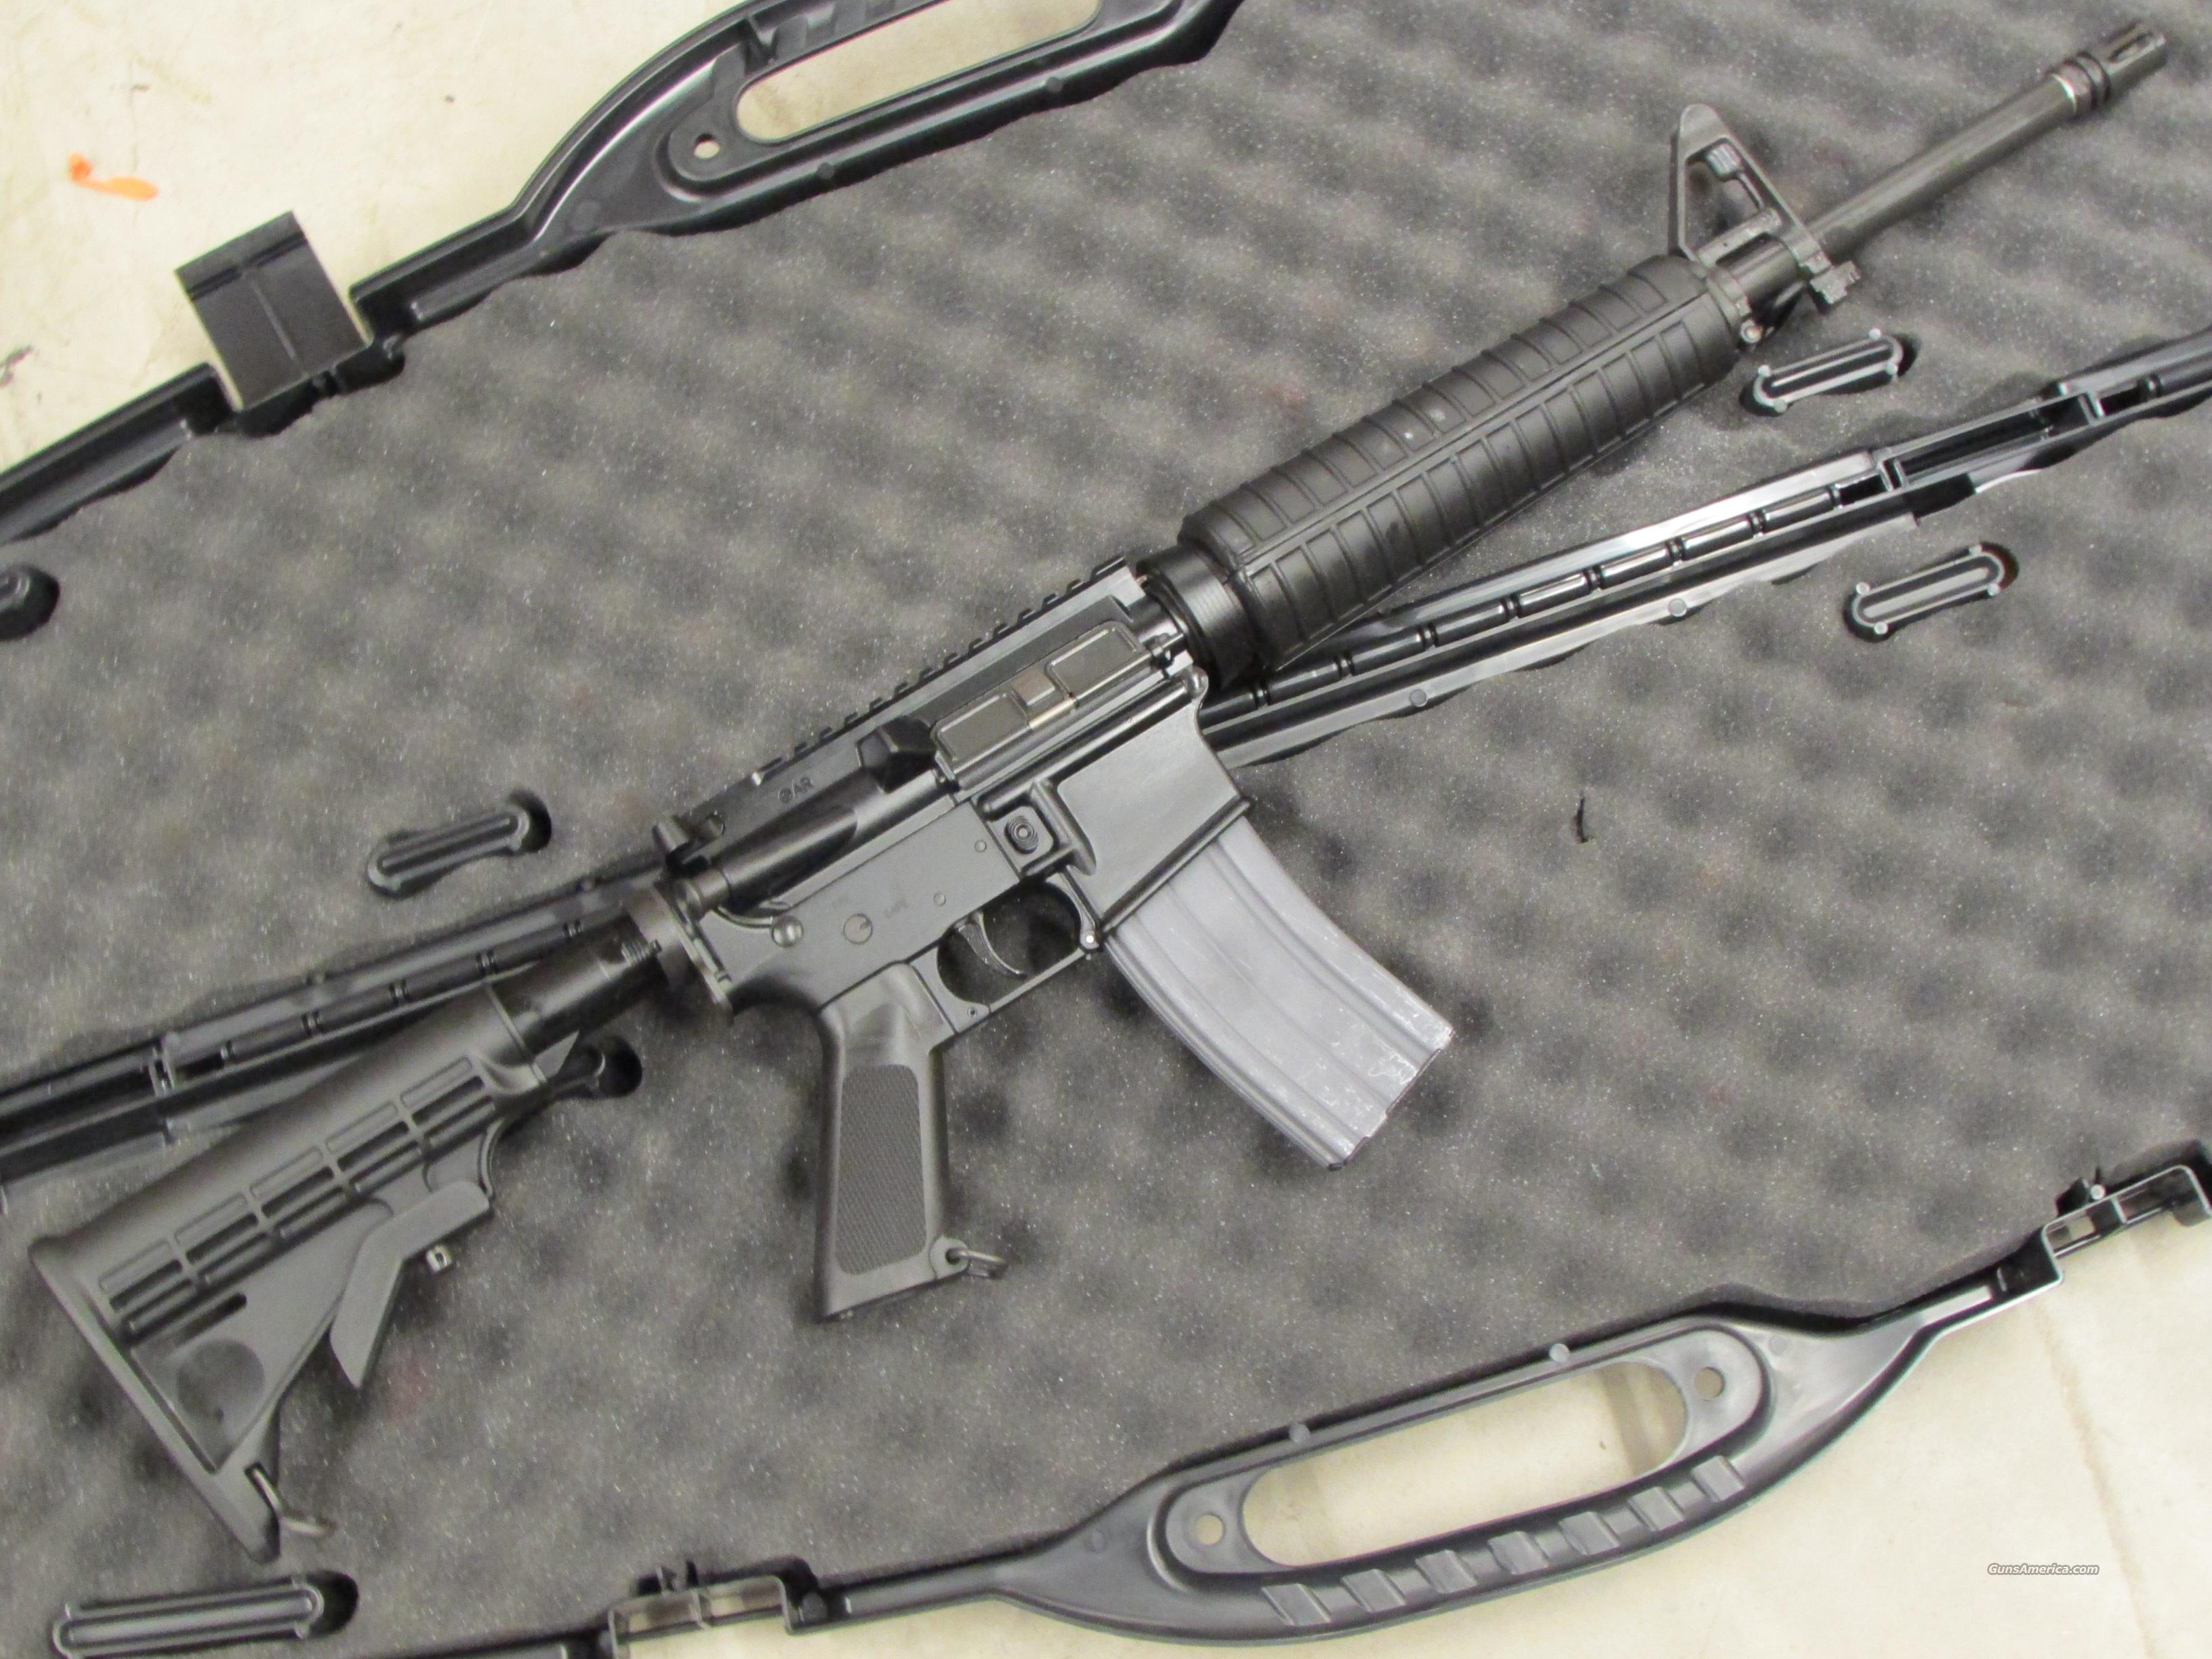 Armalite M15A4 Carbine AR-15 5.56 Chrome Lined Barrel  Guns > Rifles > Armalite Rifles > Complete Rifles